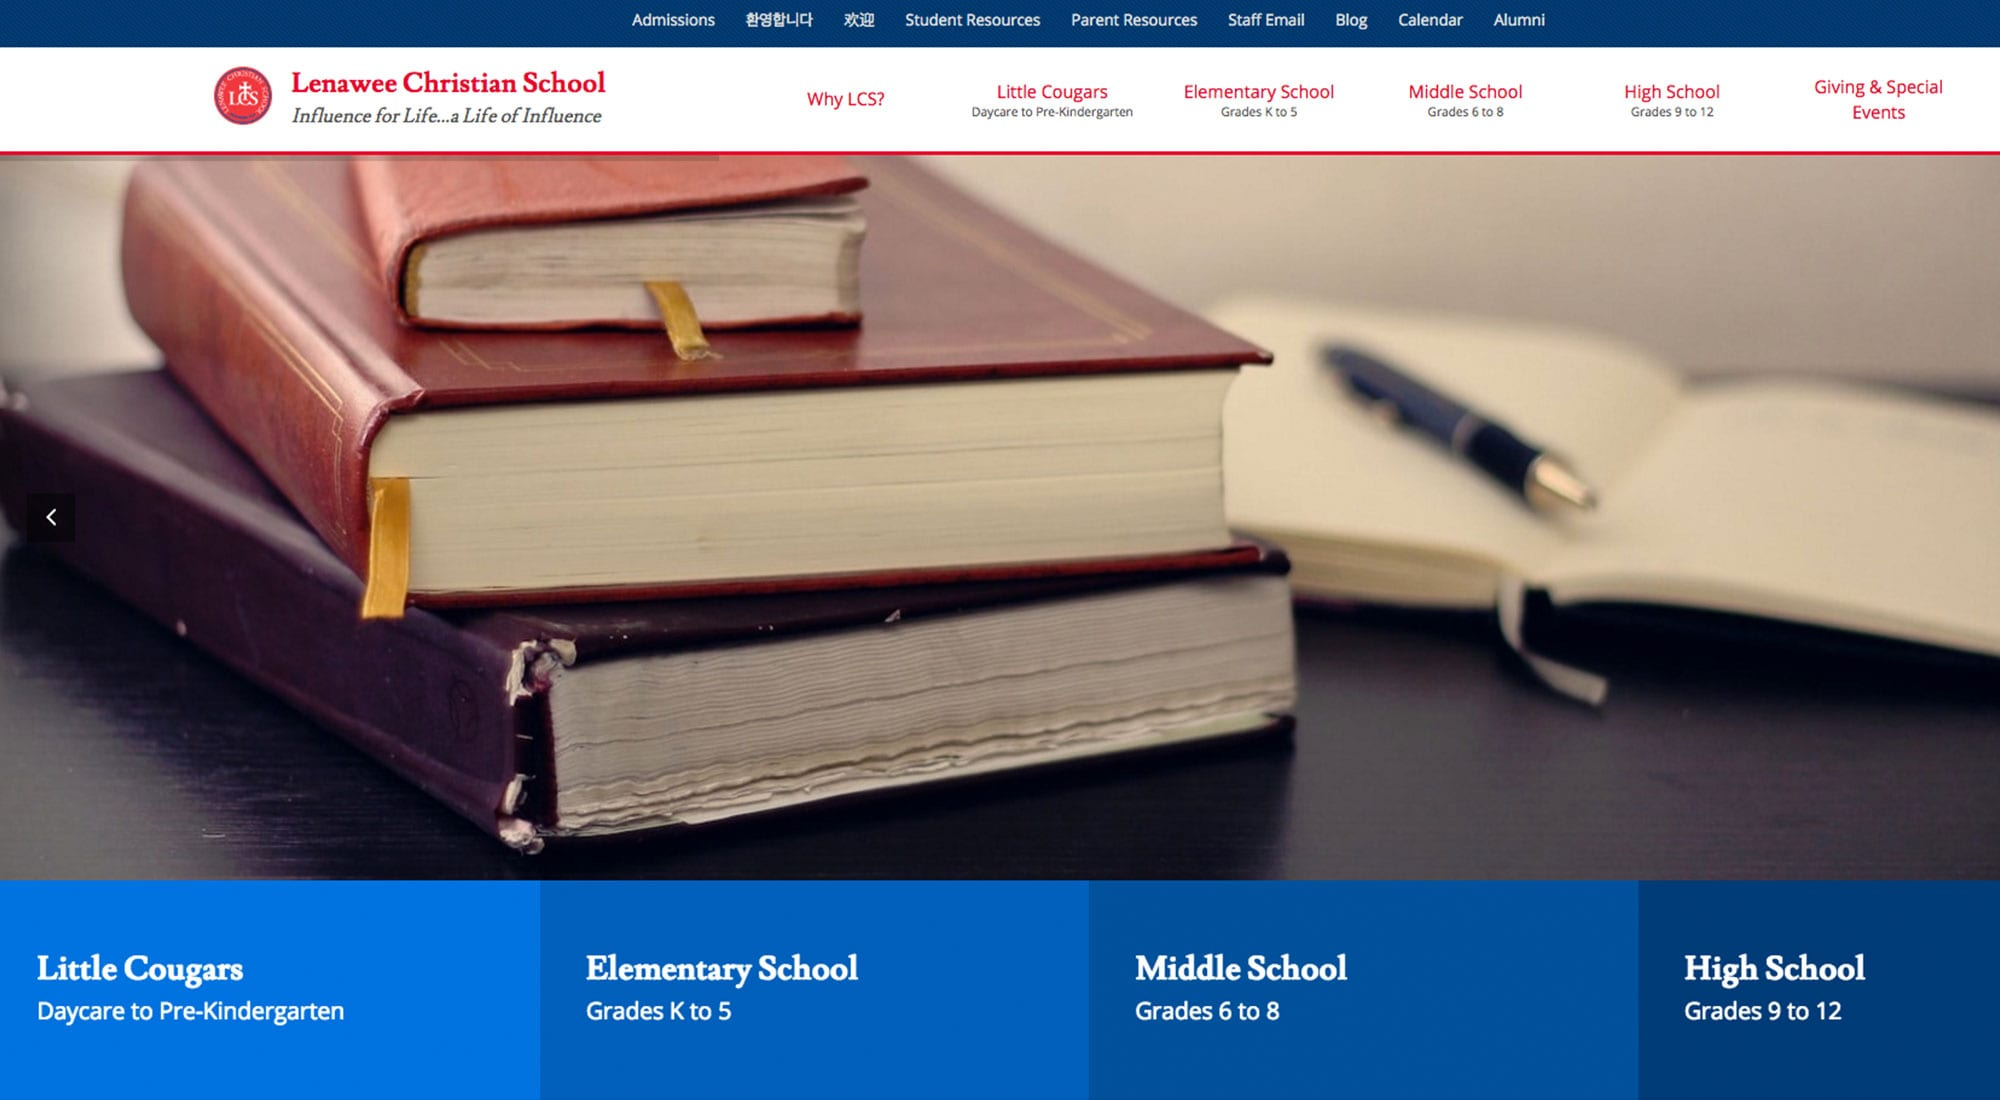 Lenawee Christian Schools Website Design by Pixelvine Creative